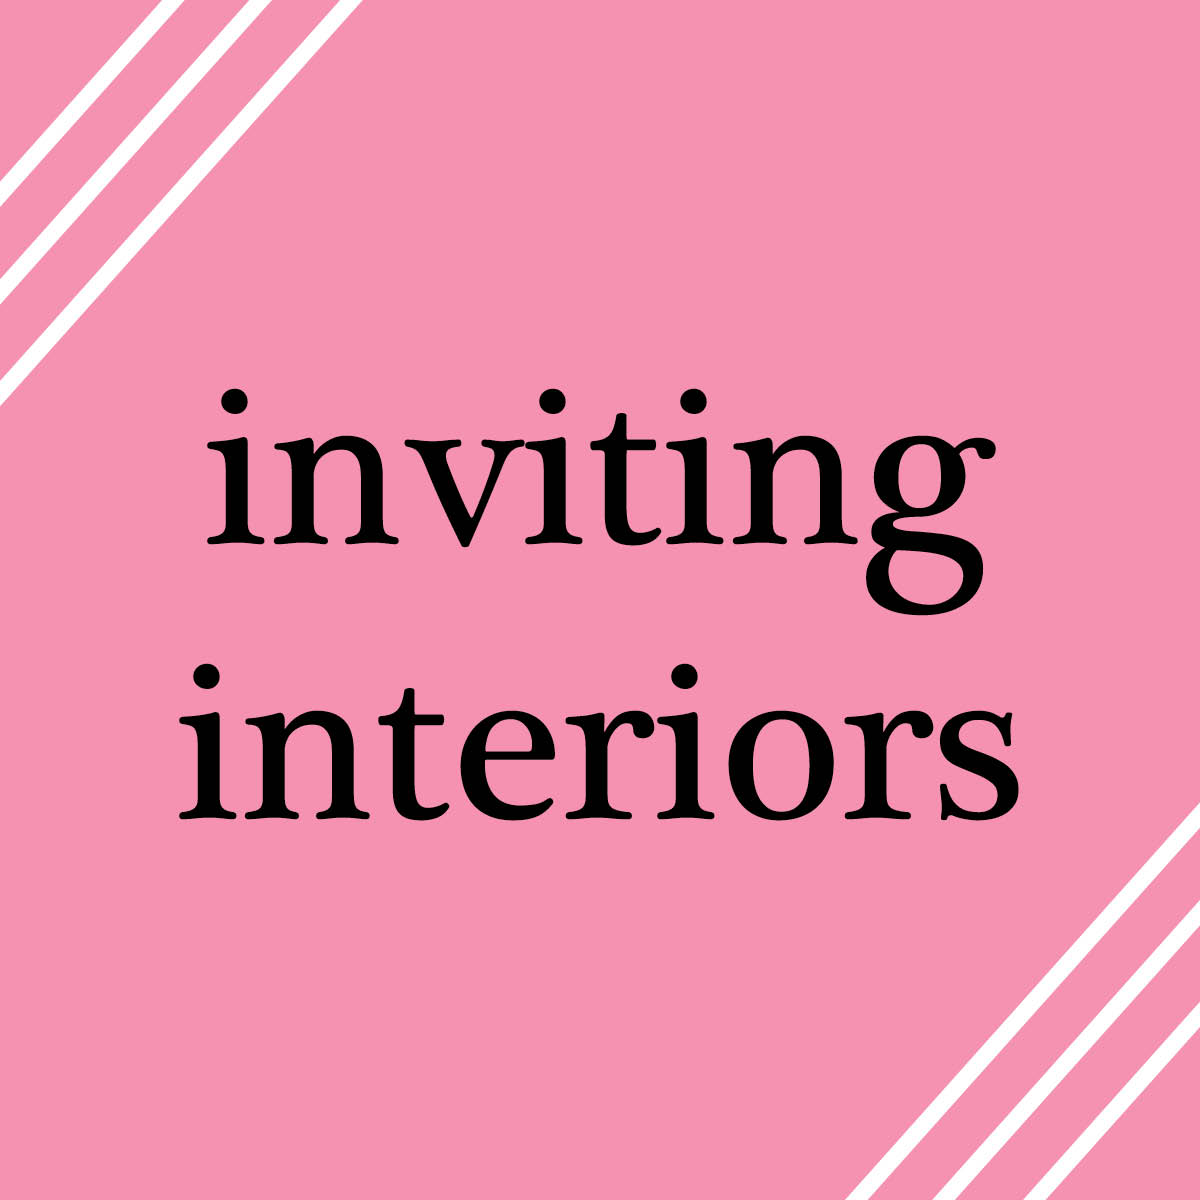 Lattes with liv inviting interiors perkins will part 2 for Inviting interiors